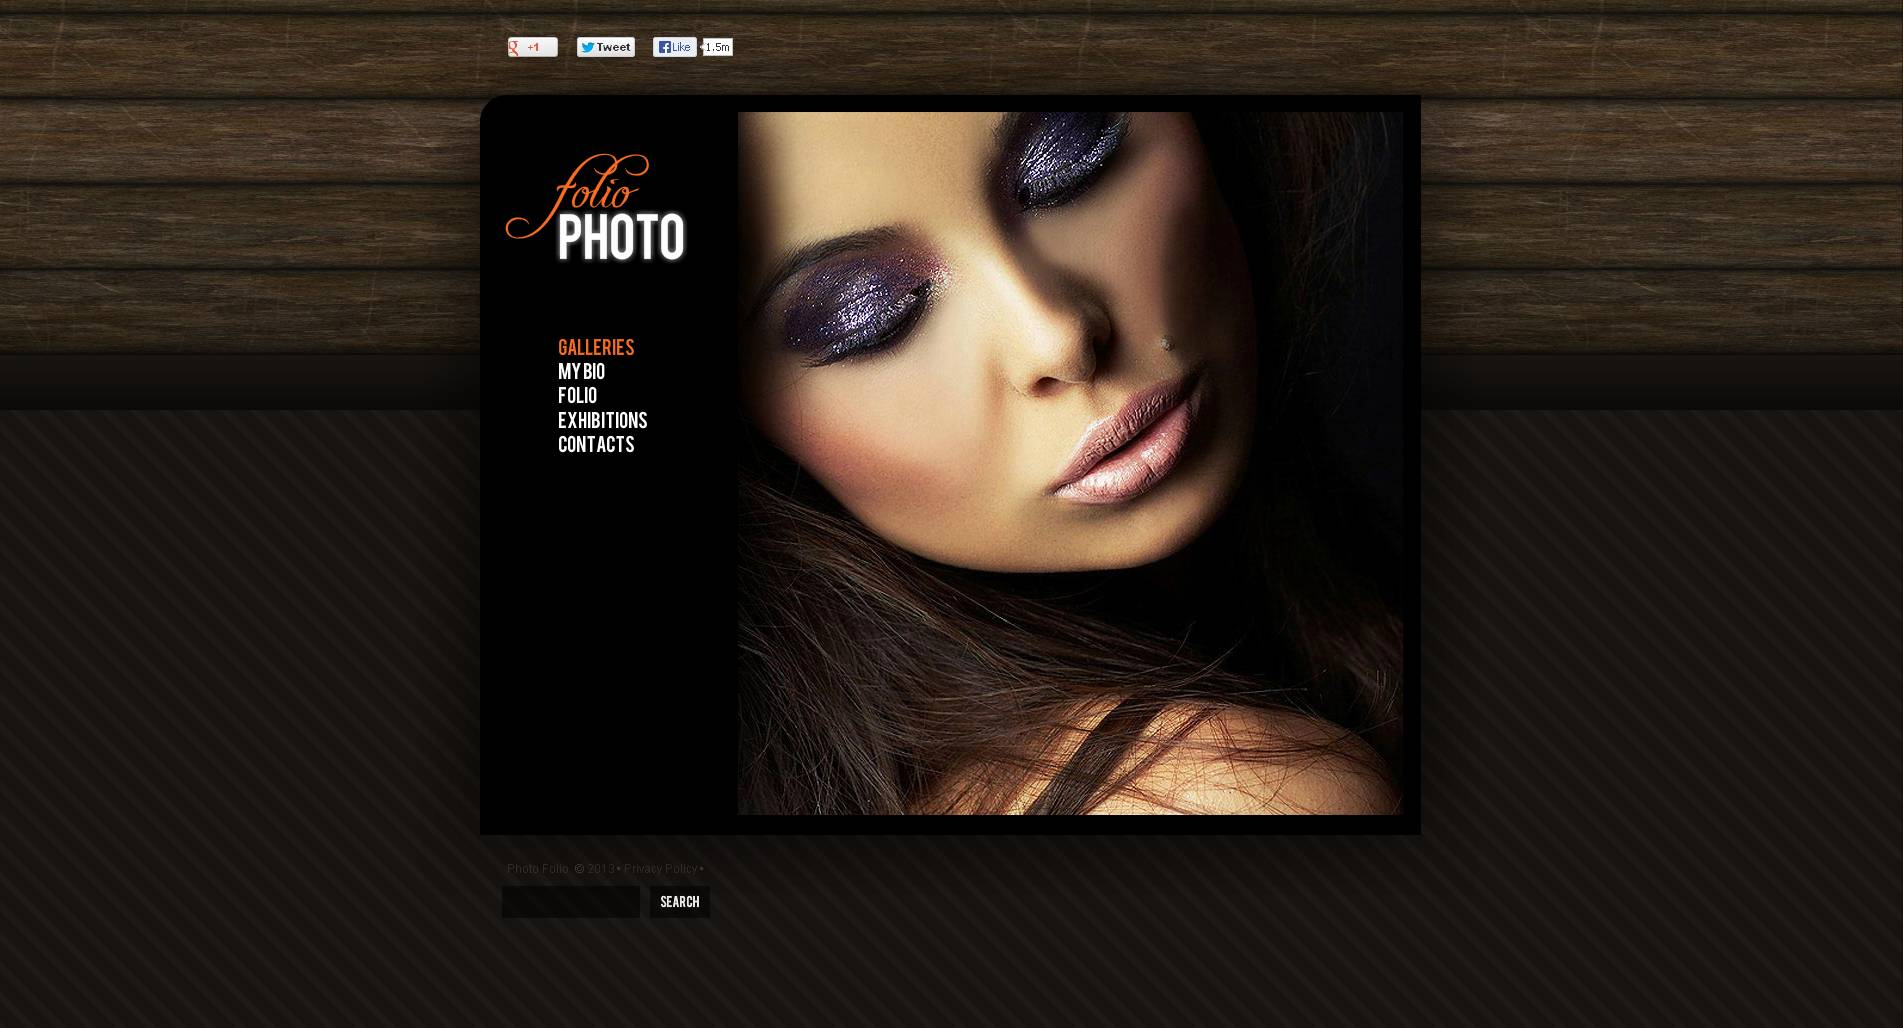 Image motion: Free 3D Flash photo gallery for website. Make 3D photo 3d flash photo gallery for website